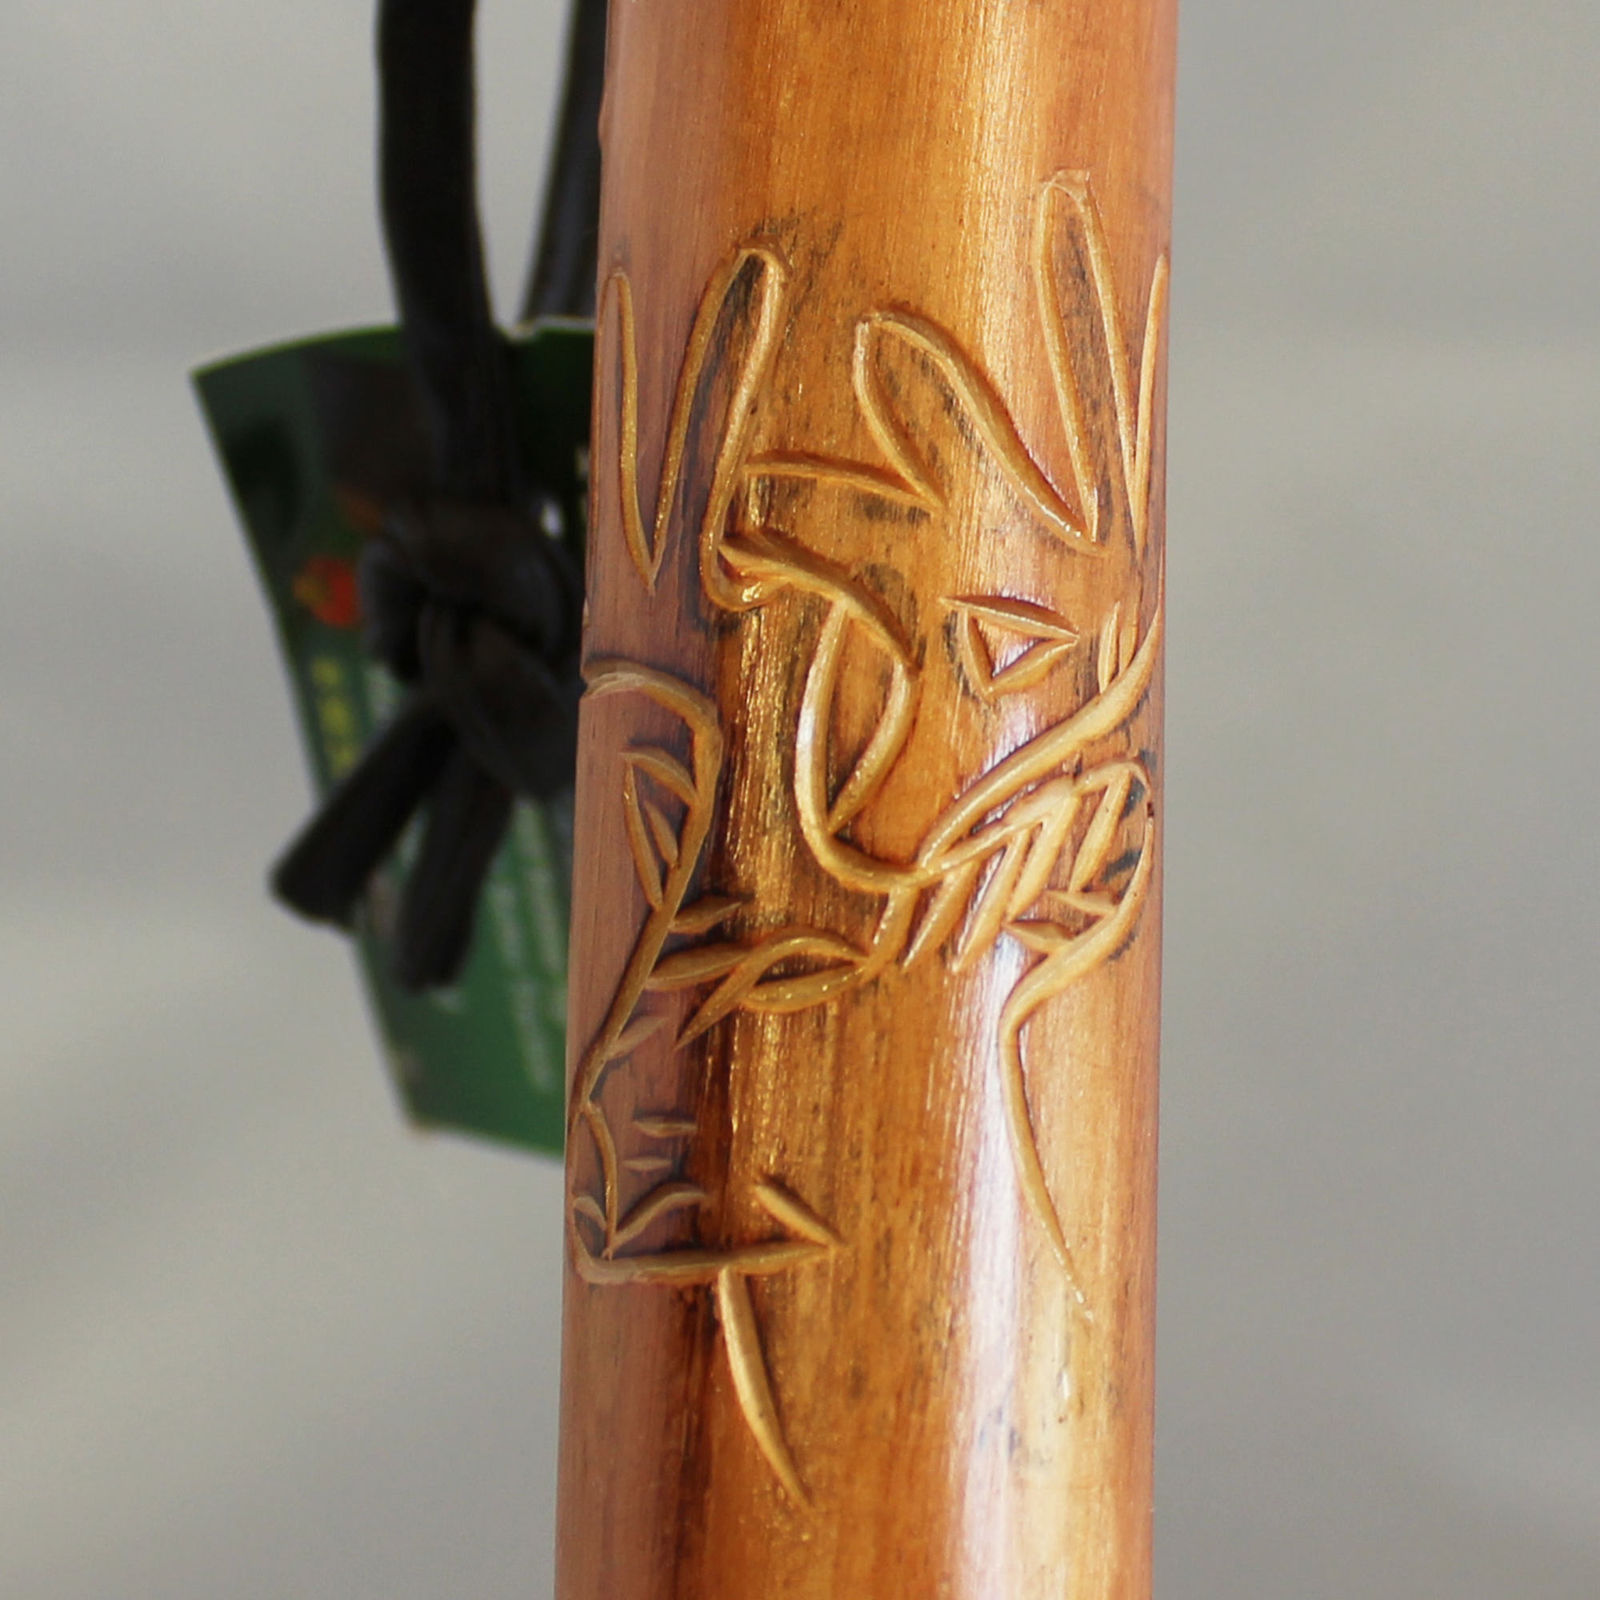 Wooden Cane Designs Hand Carved Des...